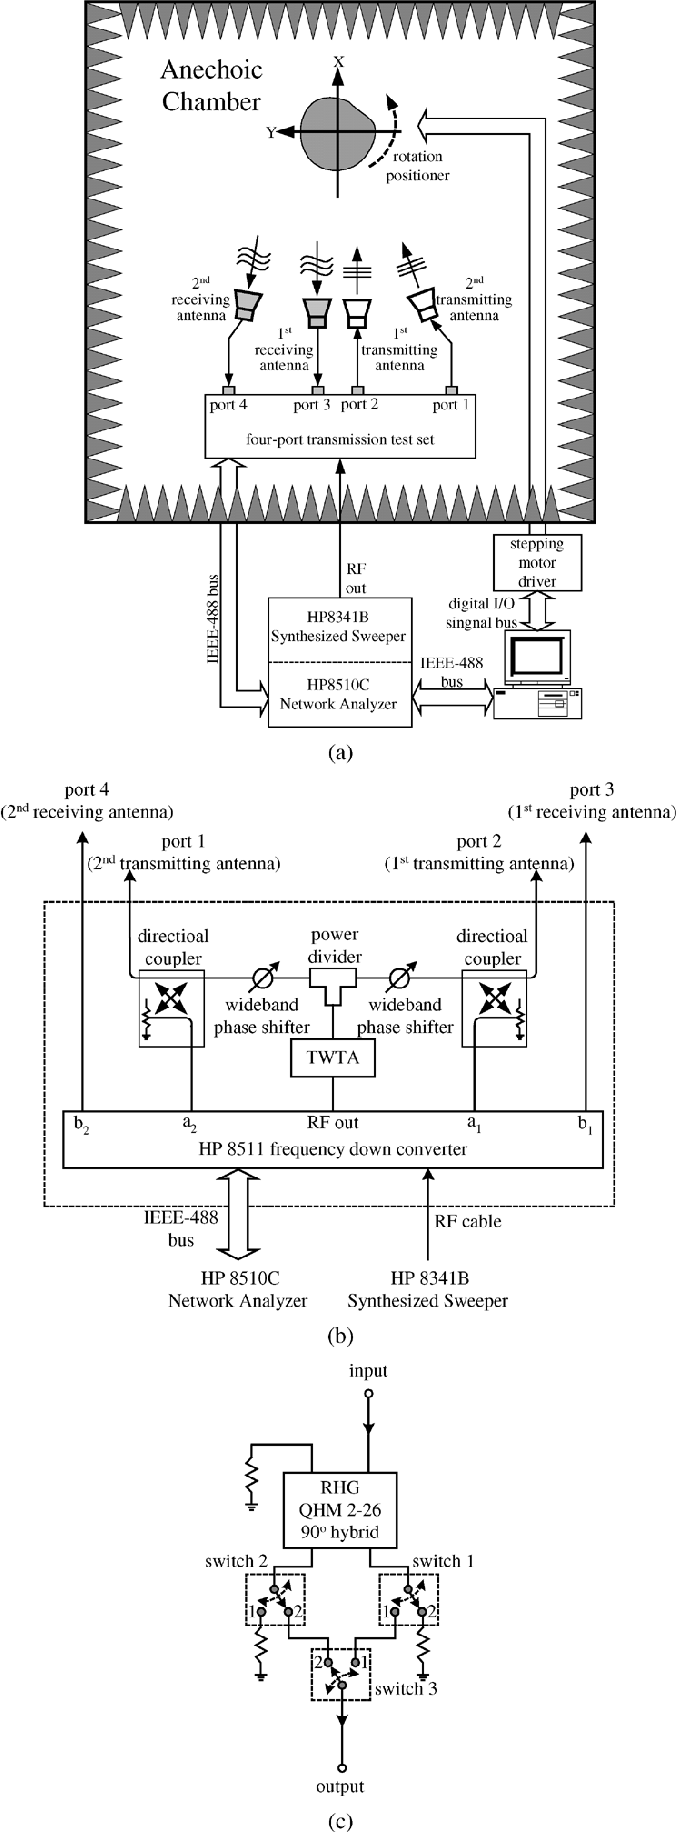 An effective usage of vector network analyzer for microwave imaging